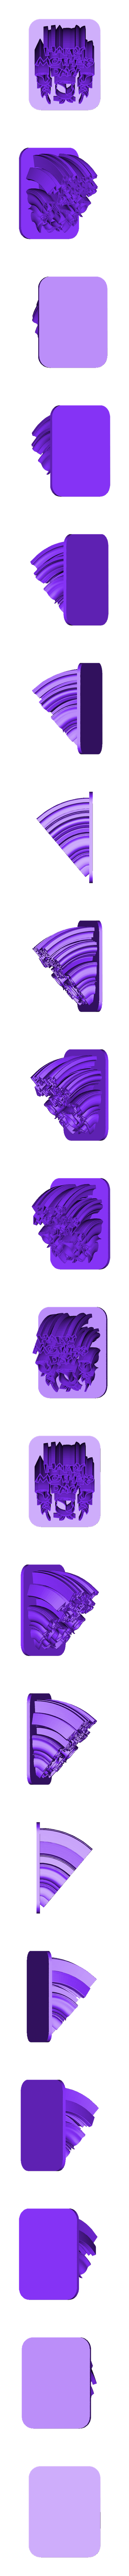 6px md small.stl Download free STL file happy mothersday 2 files 1 small 1 large • 3D printing object, liggett1